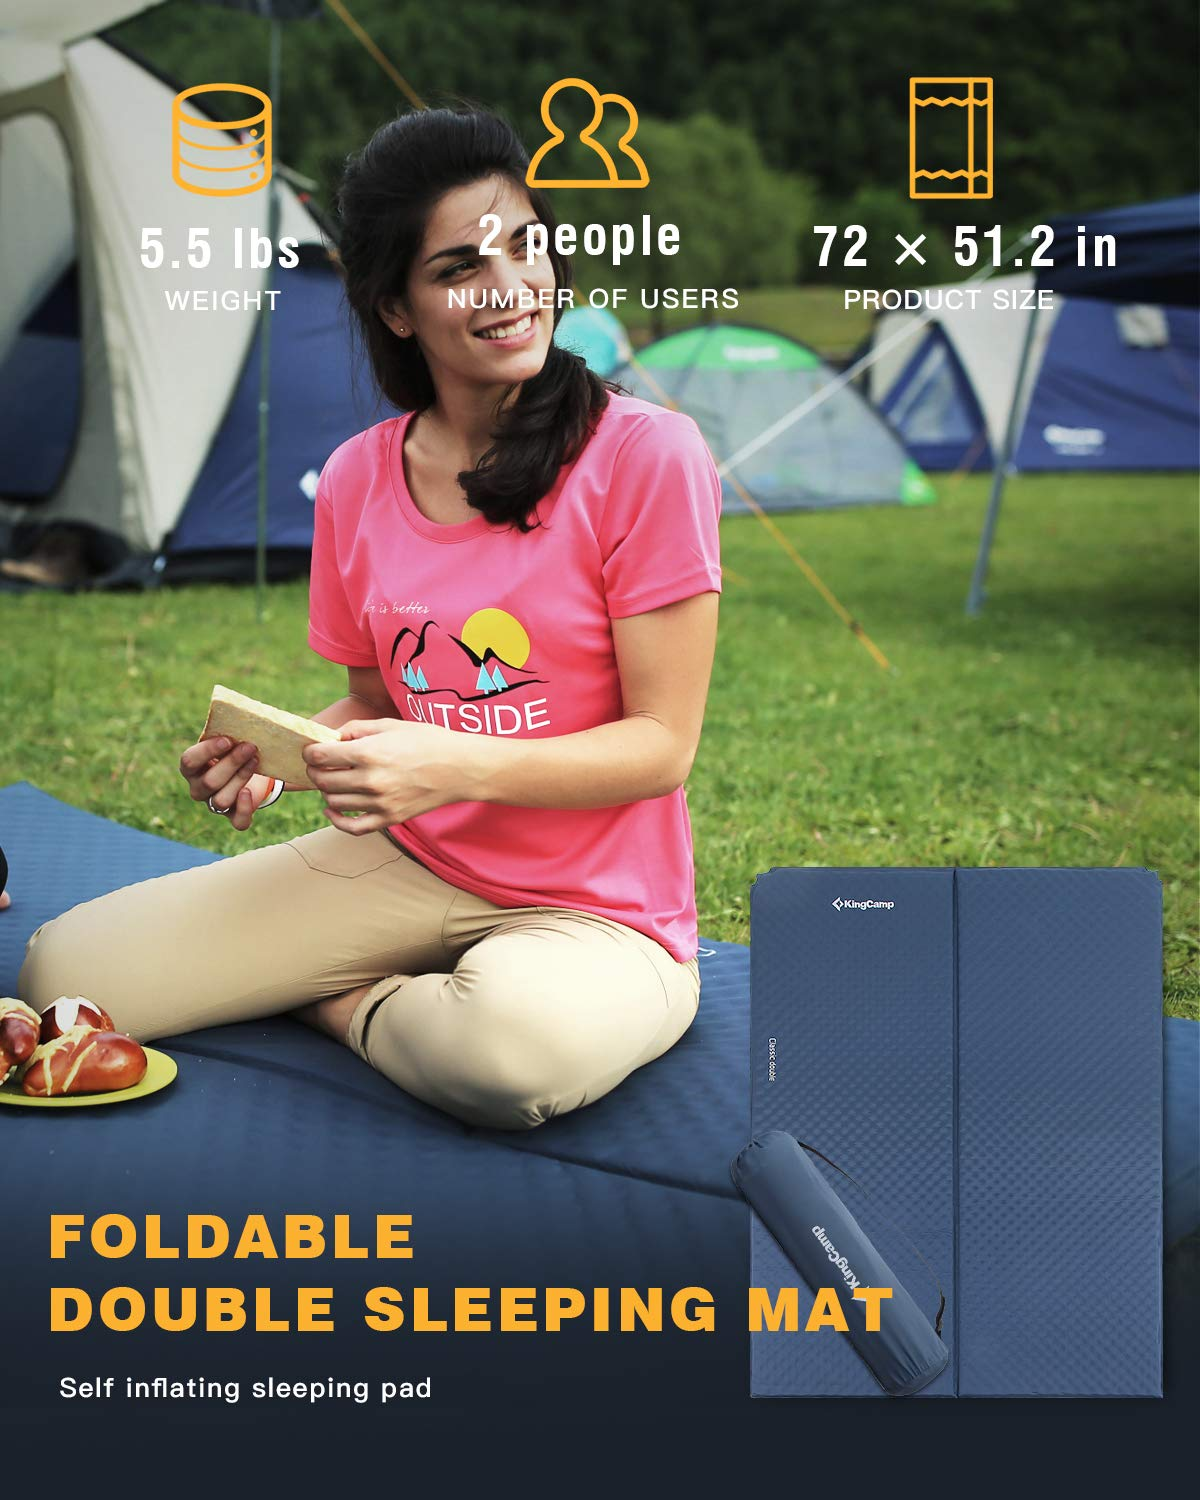 KingCamp CLASSIC Double Light Self-Inflating Camping Sleeping Pad Multiple Sizes Available